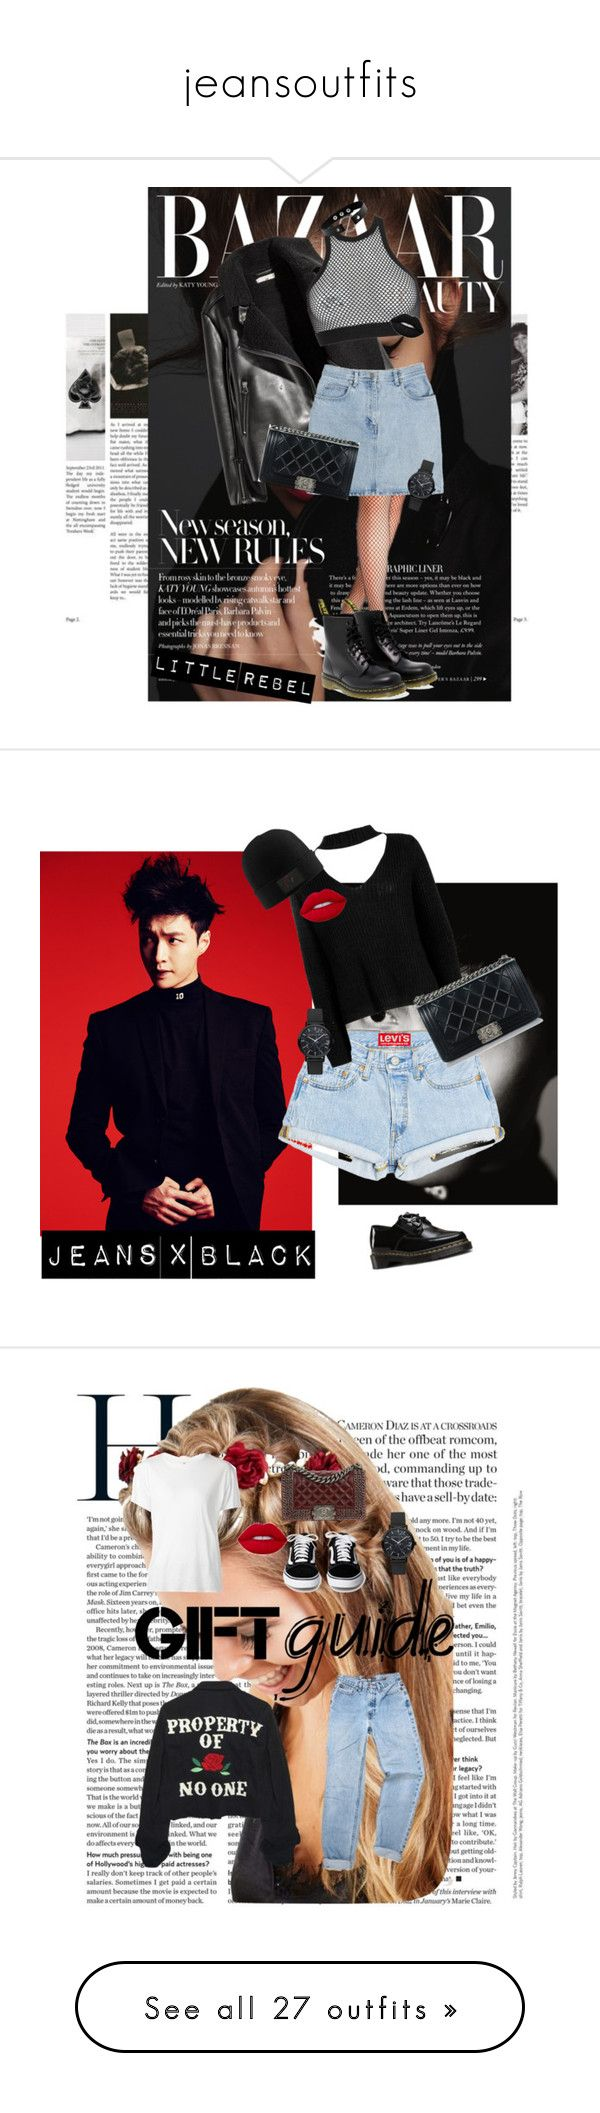 """""""jeansoutfits"""" by blondsailorina ❤ liked on Polyvore featuring Bill Blass, Dsquared2, Dr. Martens, Chanel, Boohoo, Lime Crime, Johnny Loves Rosie, R13, High Heels Suicide and Oui"""